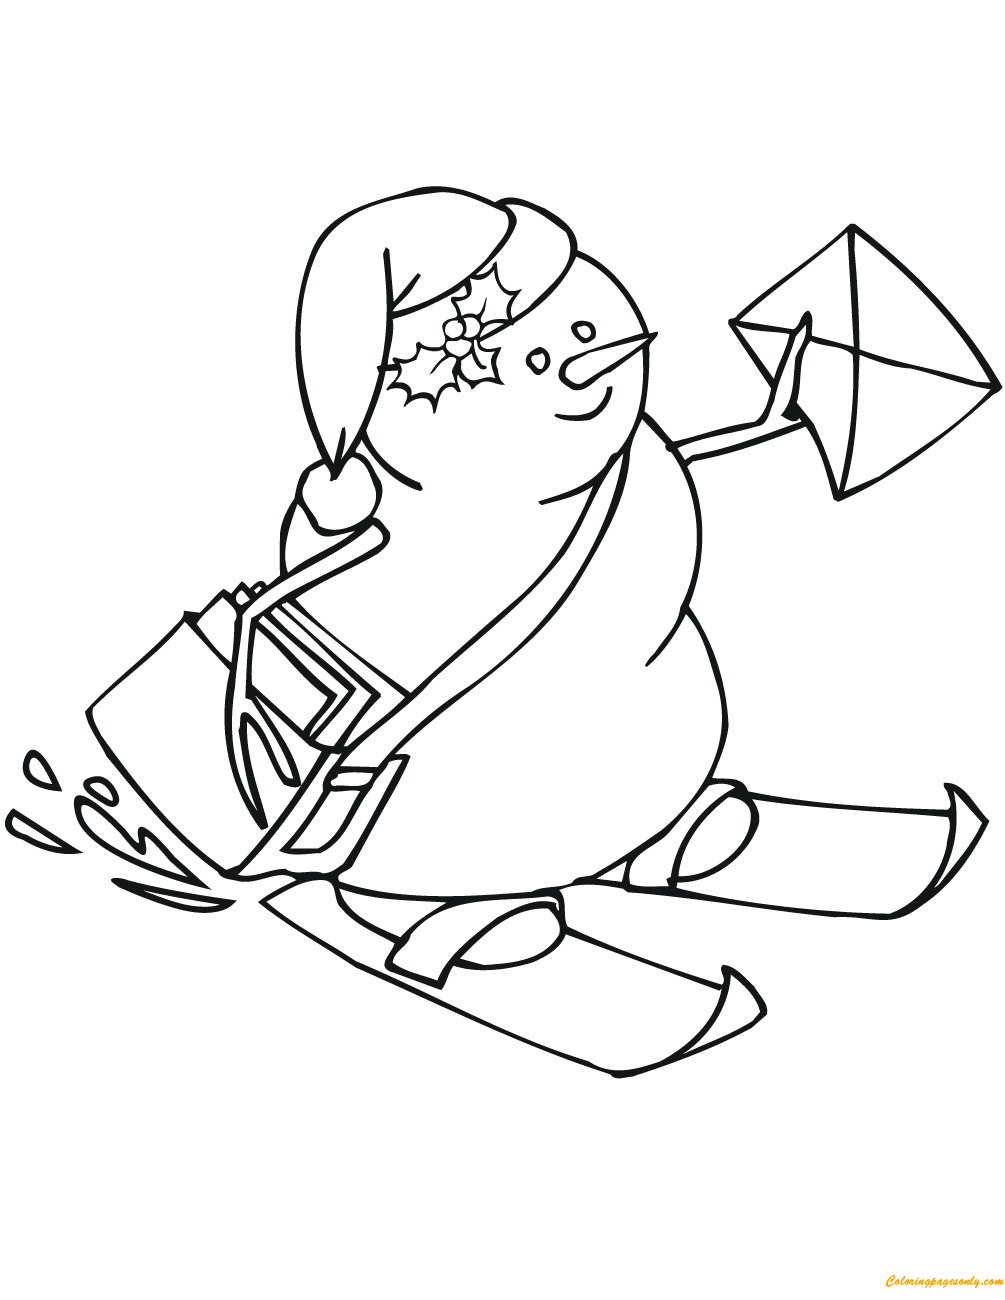 The Snowman Postman Coloring Page